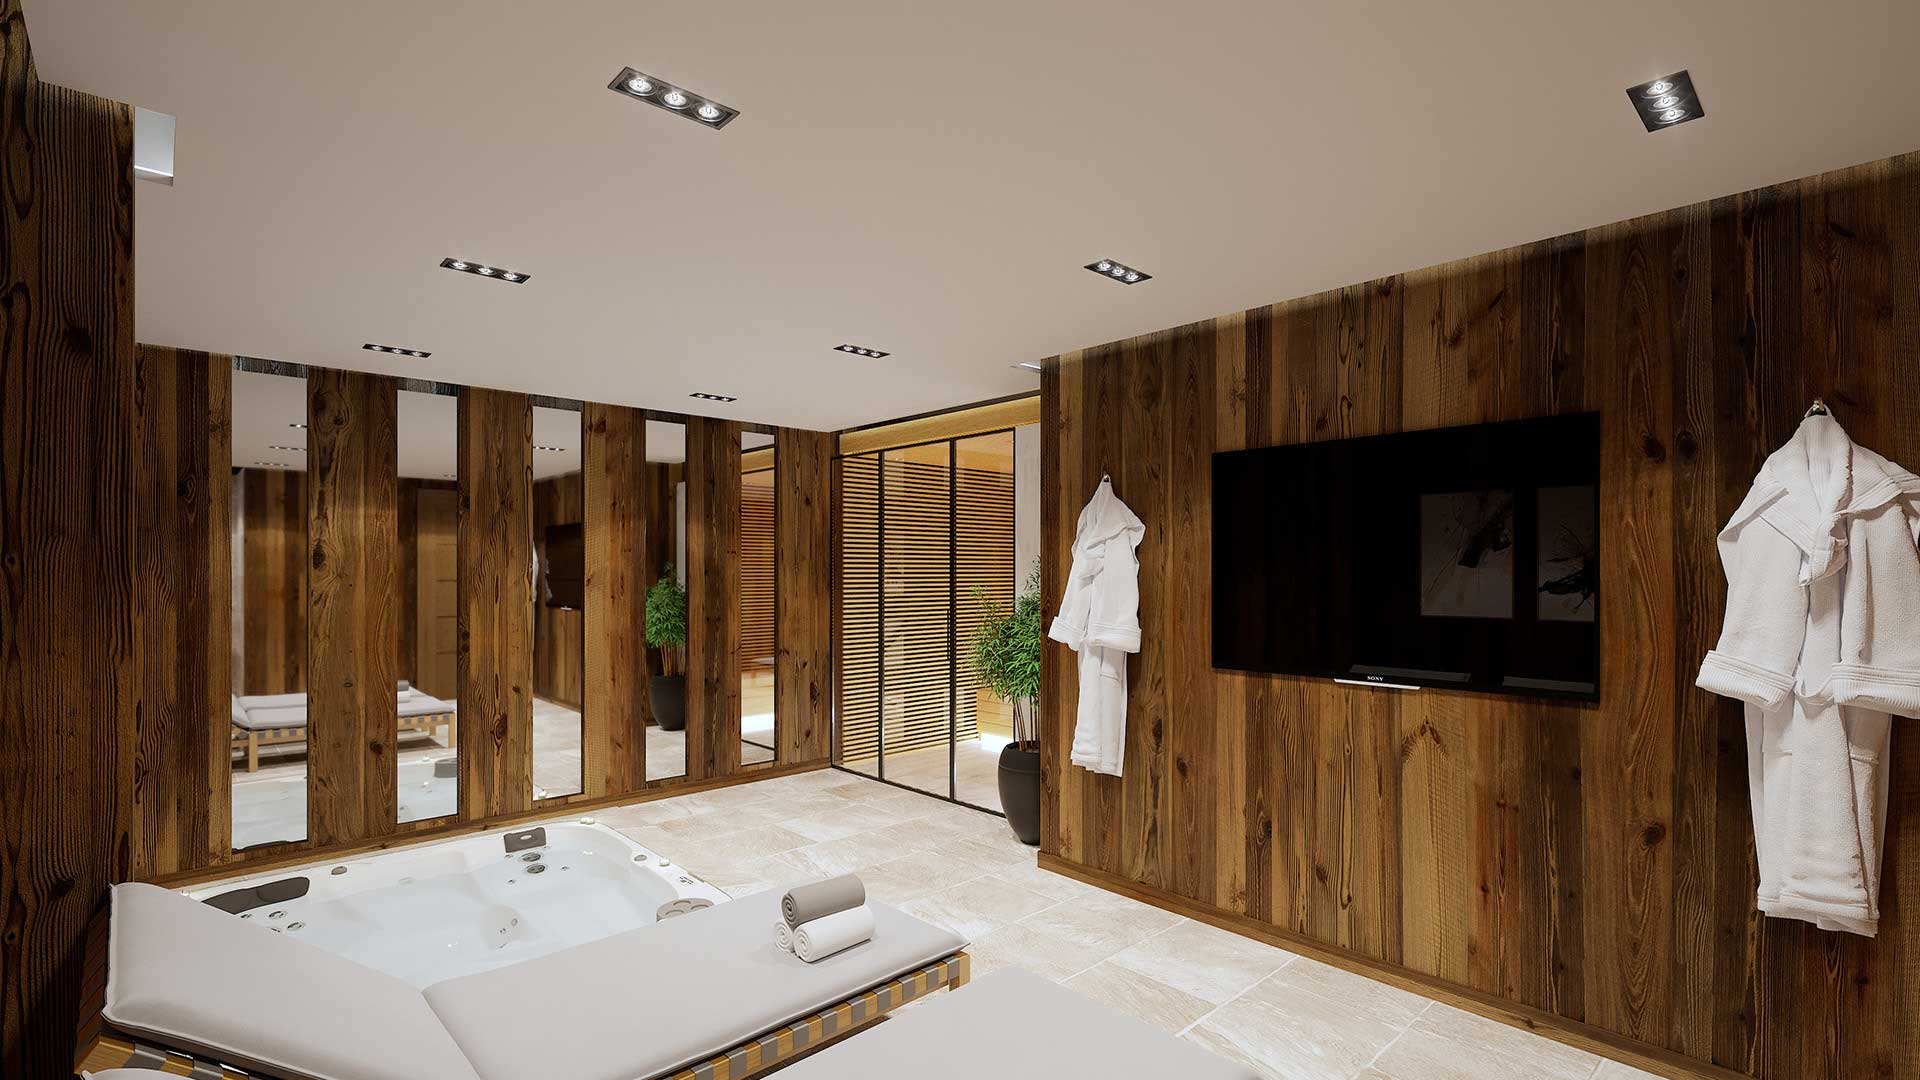 Creation of a 3 dimensional luxurious spa for the real estate promotion of the property.